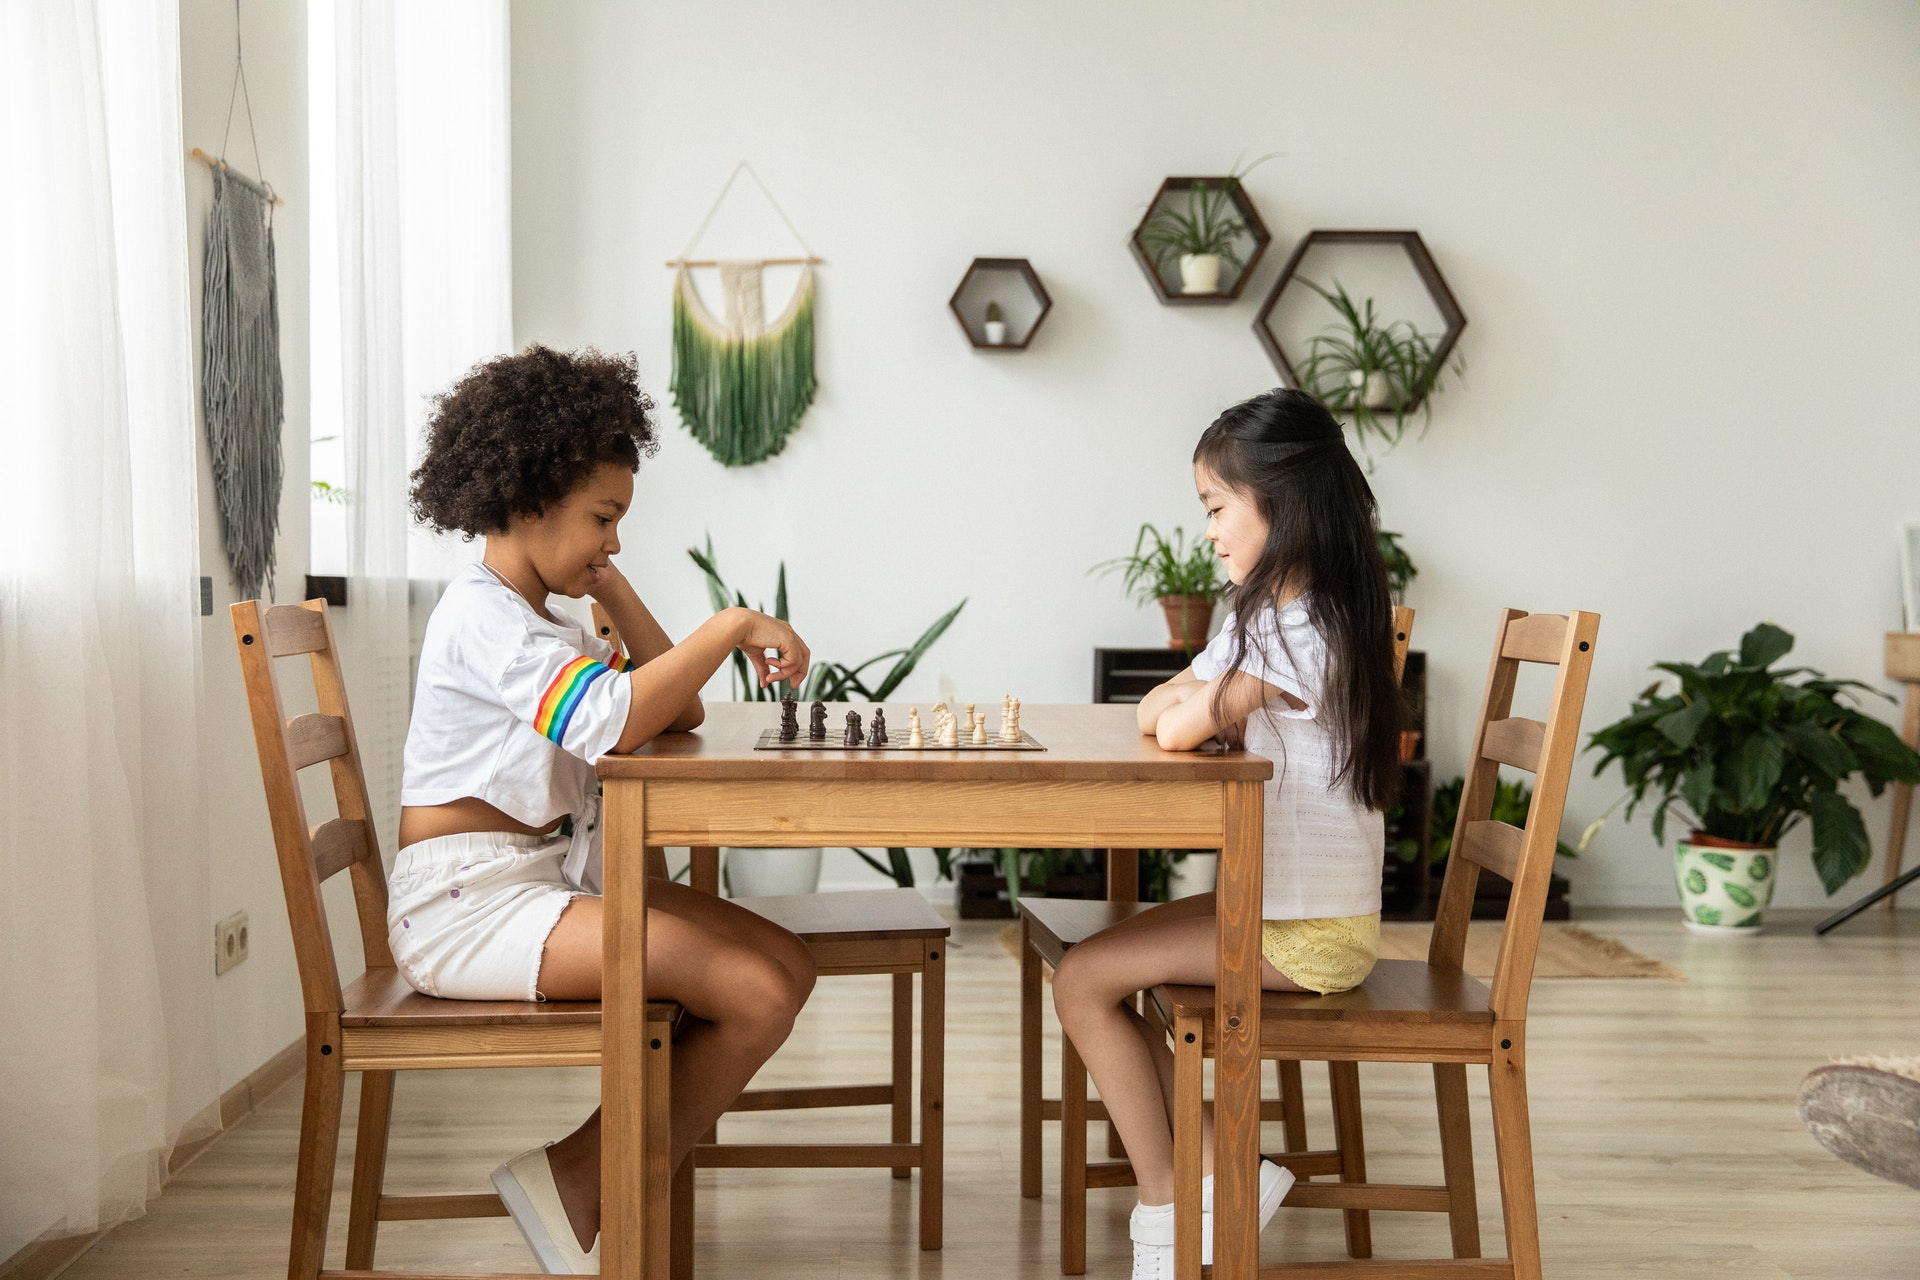 Two young girls playing chess